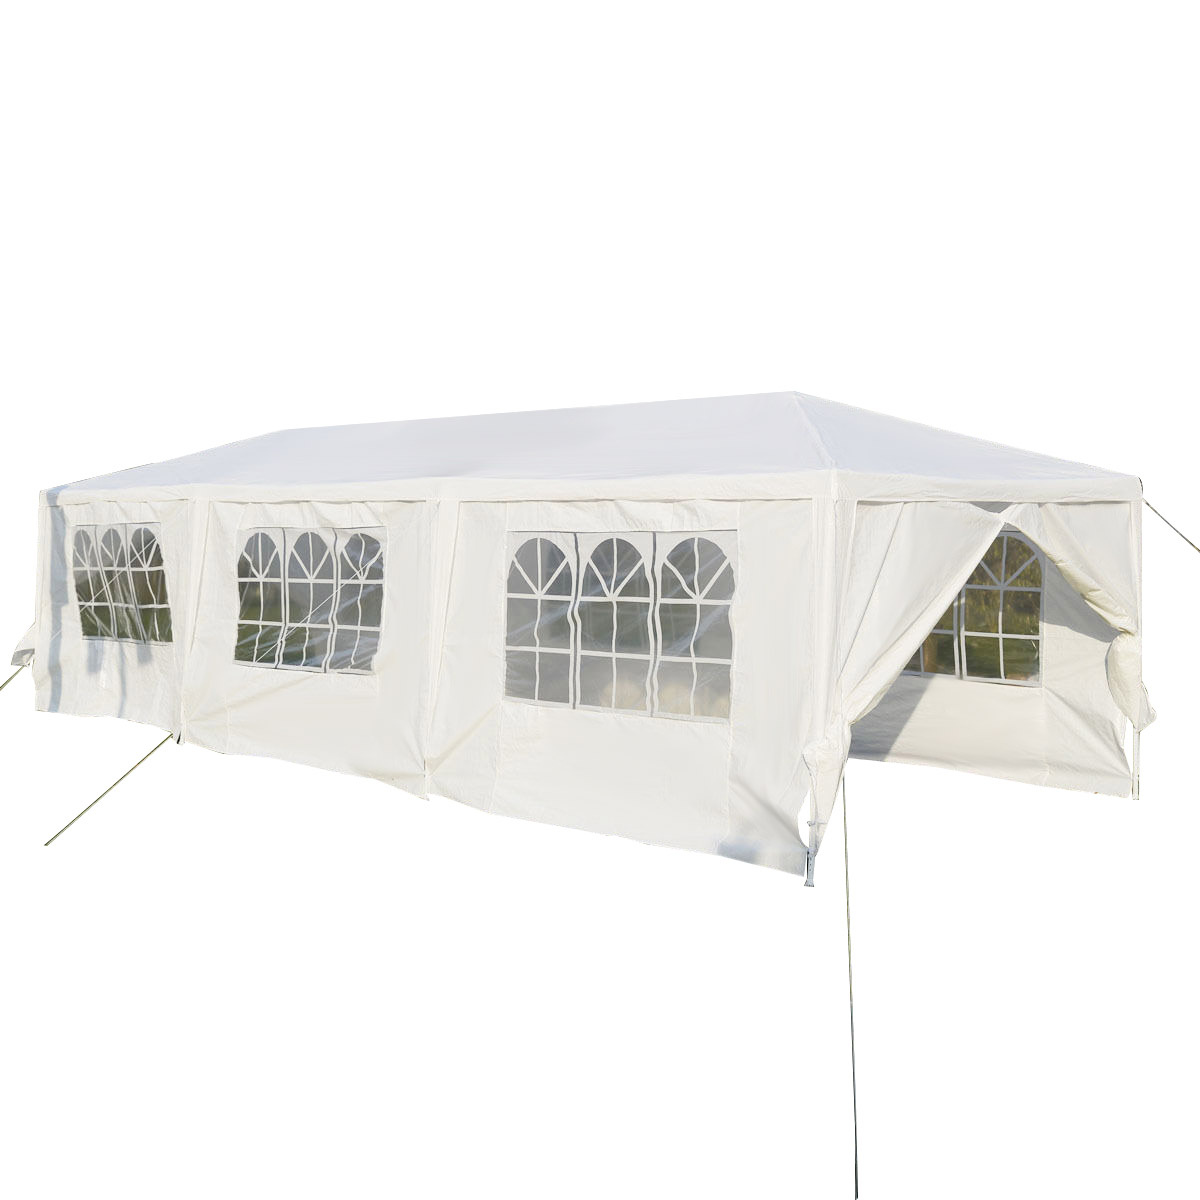 Gymax White Wedding Tent 10'x30'Outdoor Party Canopy Events - image 2 of 10